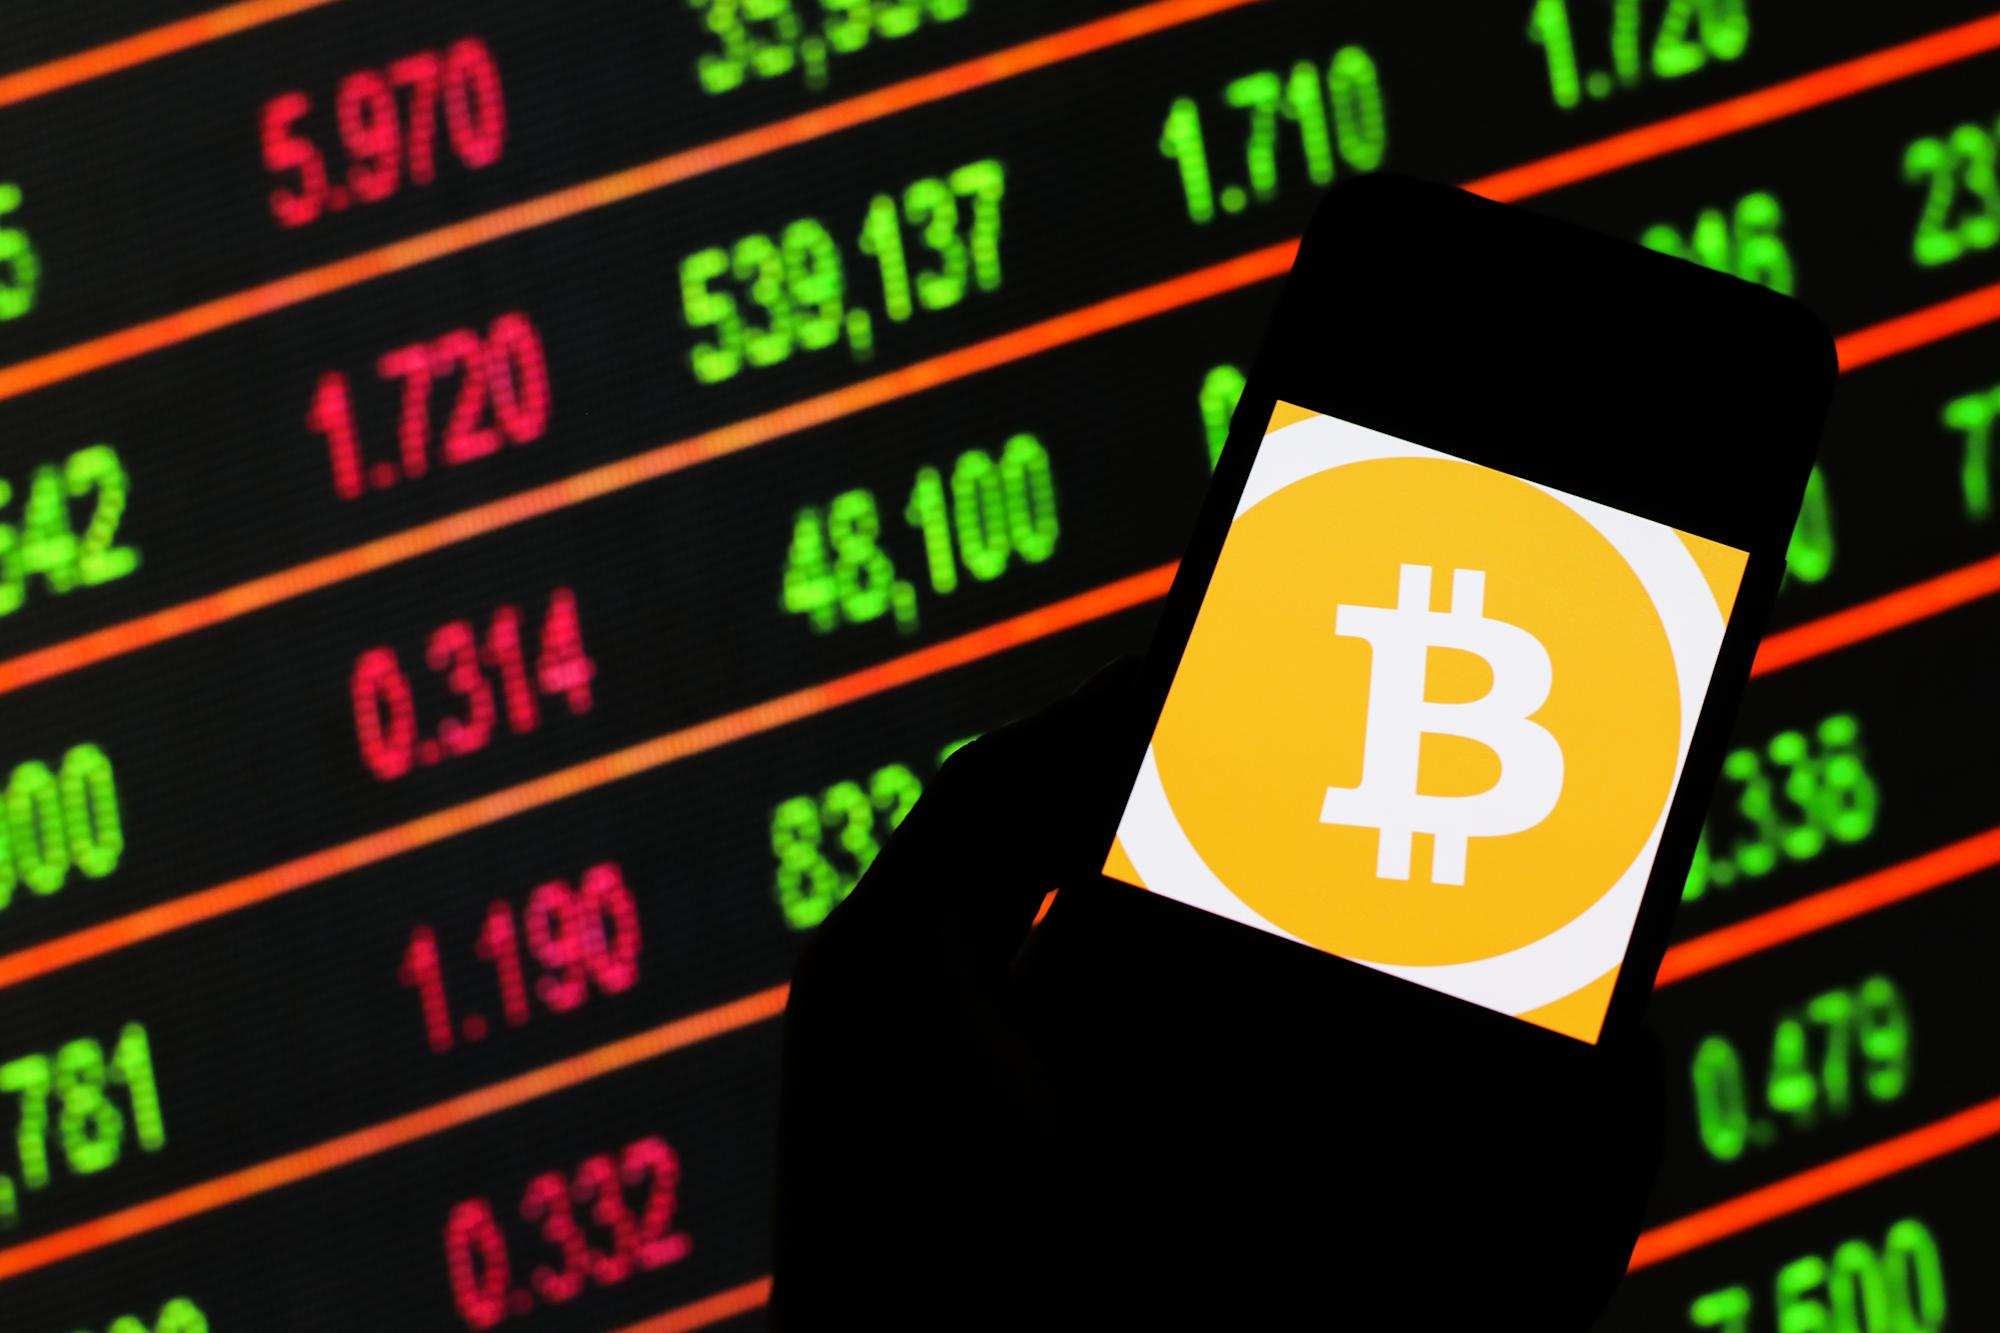 Pump and dump cryptocurrency twitterpated binary options magnet scams on facebook